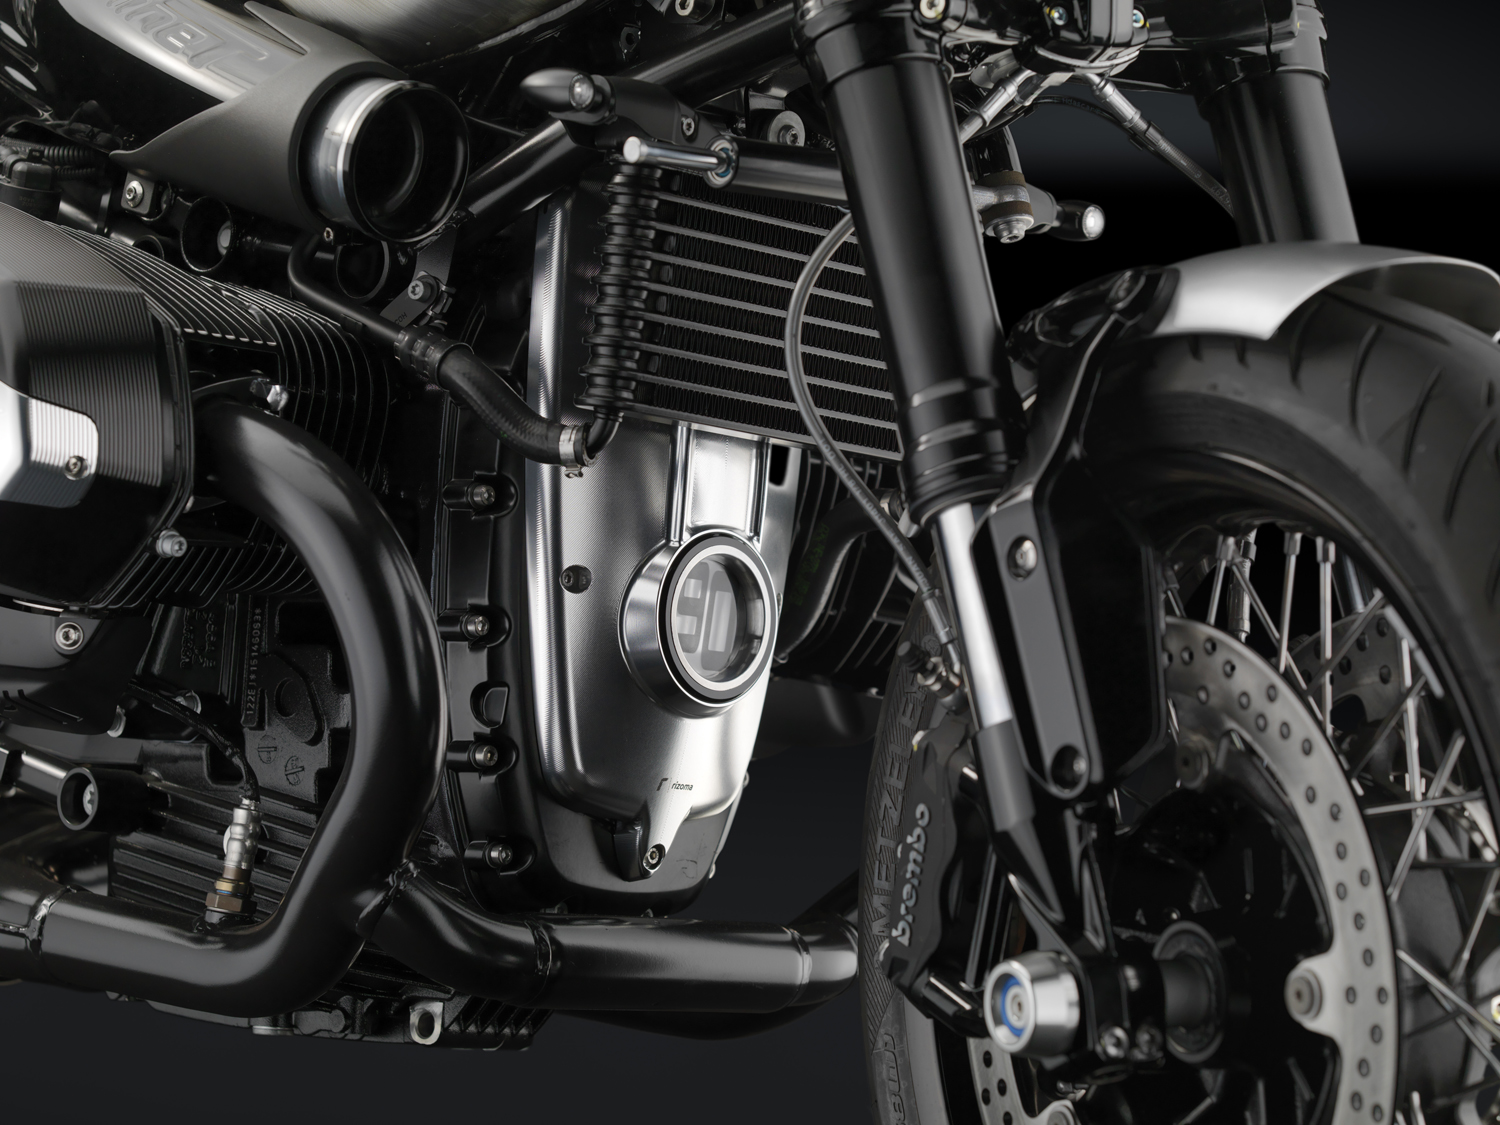 New Rizoma Accessories For BMW R nineT | Cycle World